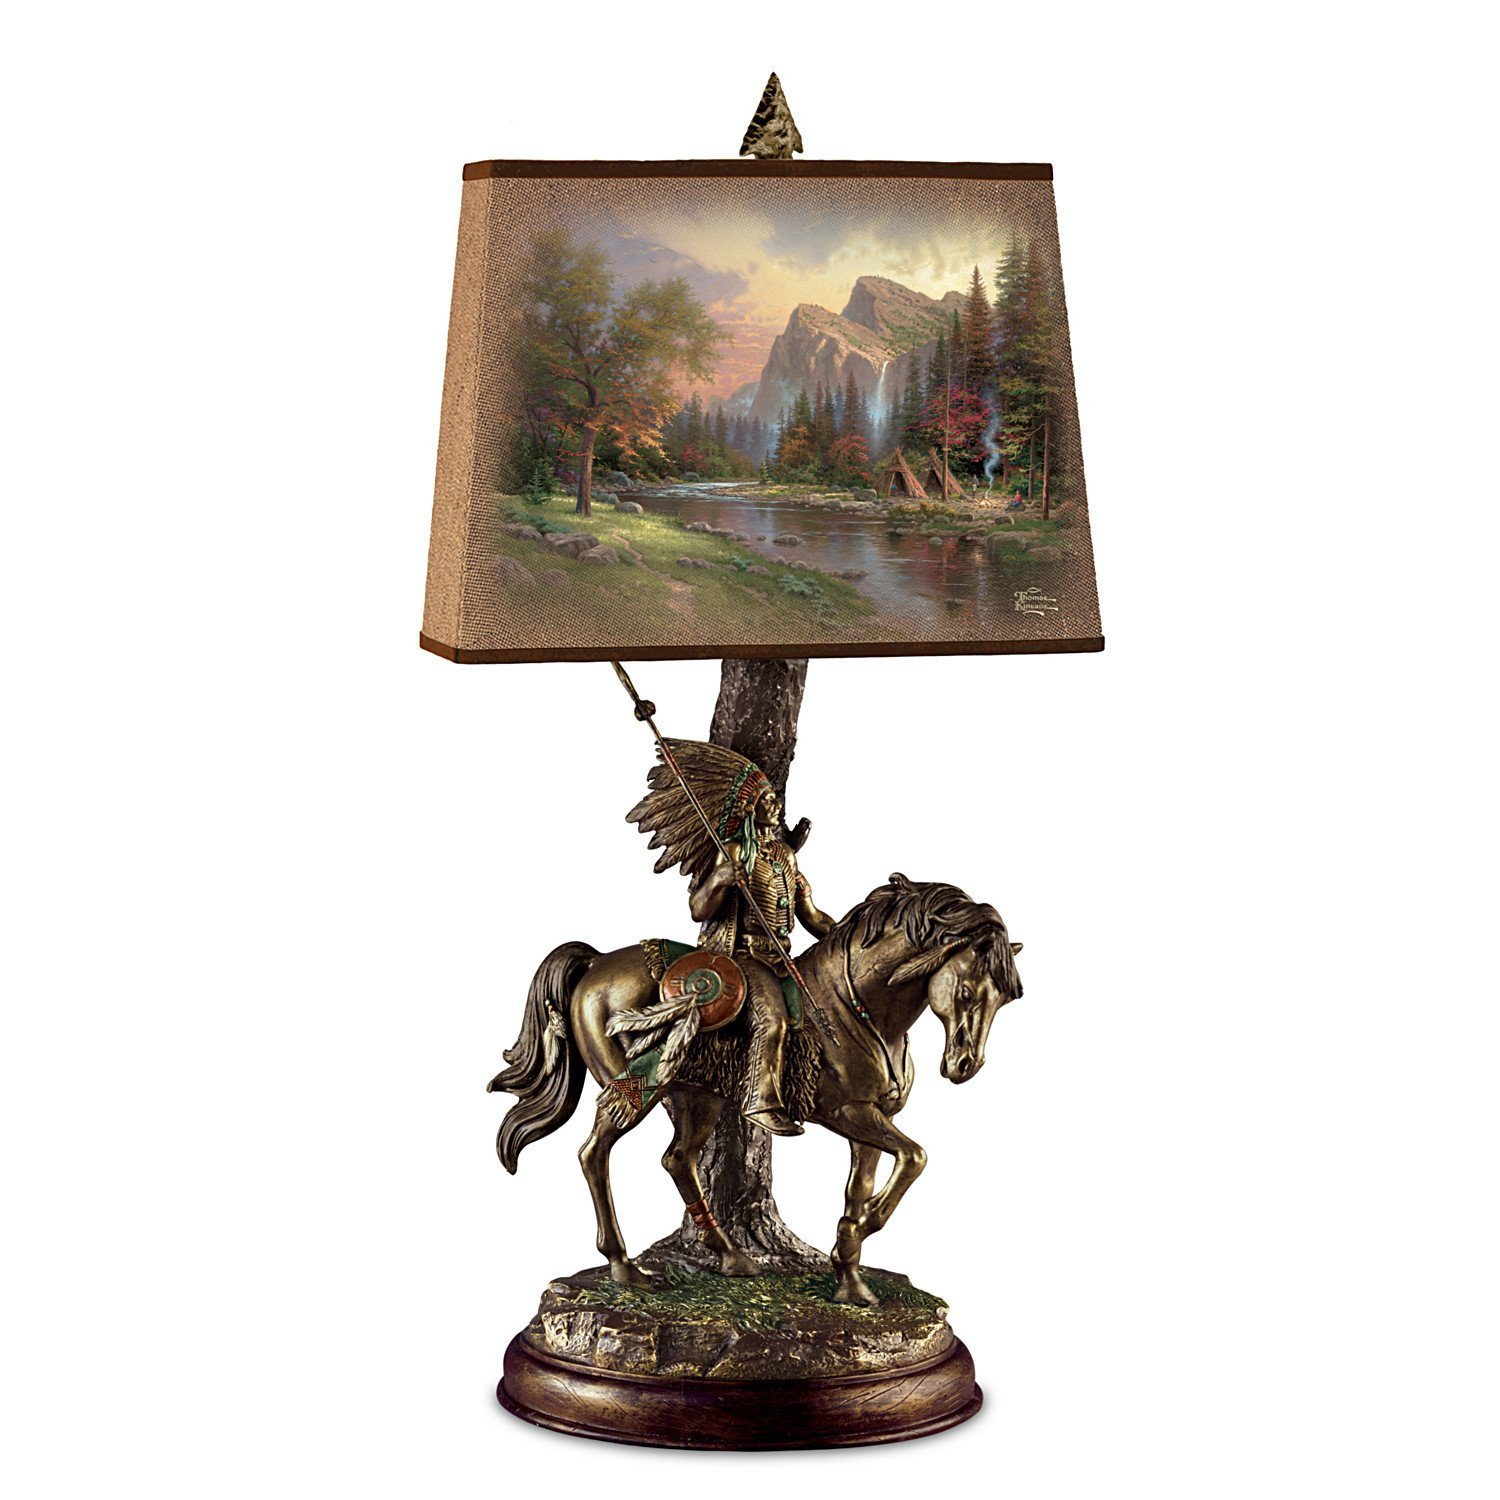 Southwestern native american lamps lighting from earth sky native american indian southwestern sculpture table lamp by thomas kinkade aloadofball Image collections